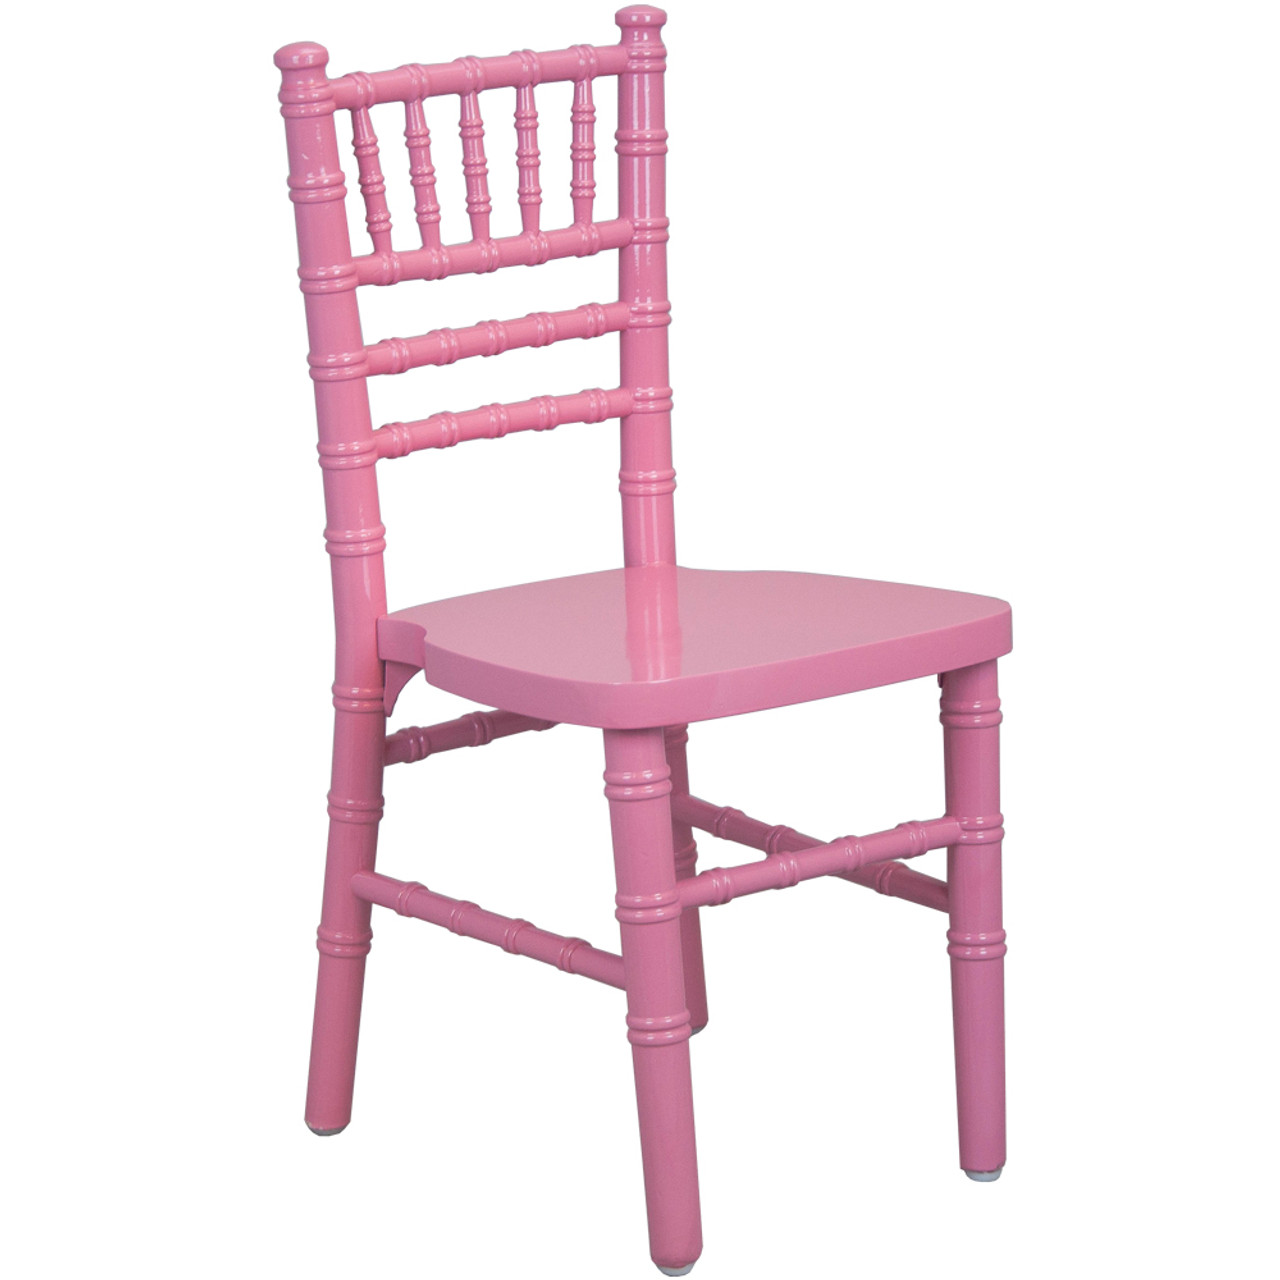 Stupendous Advantage Kids Pink Wood Chiavari Chair Kid Wdchi Pink Caraccident5 Cool Chair Designs And Ideas Caraccident5Info